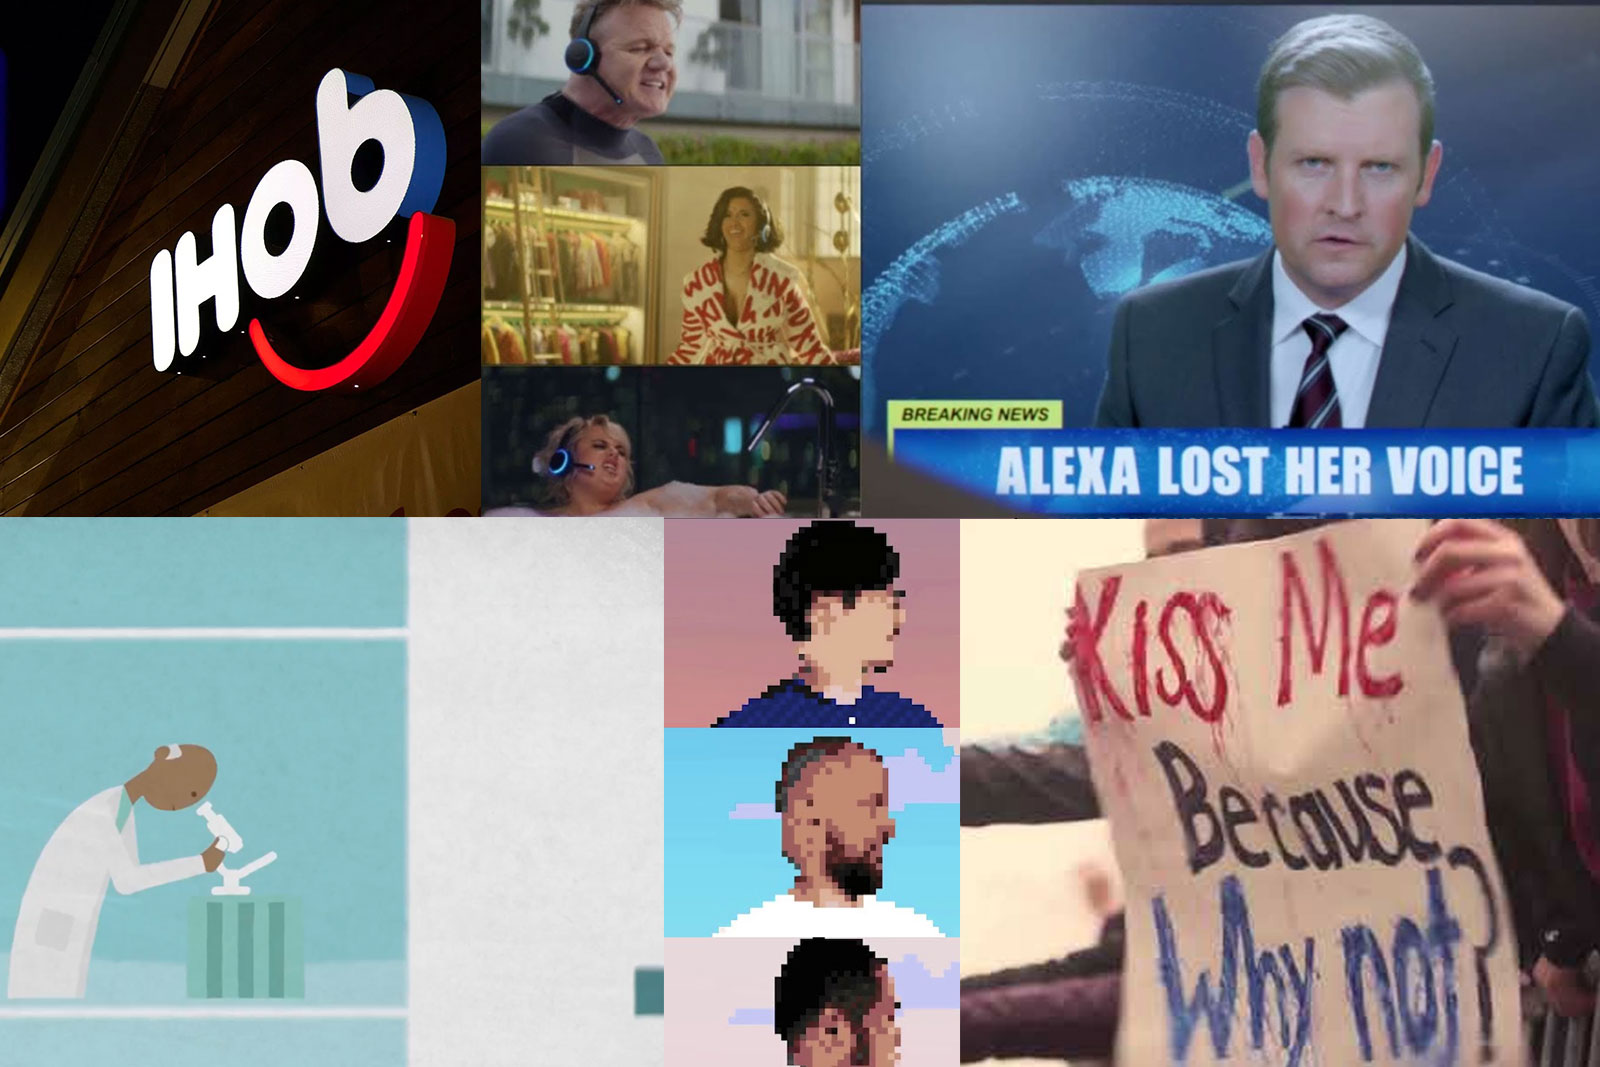 6 of the Most Memorable Digital Marketing Campaigns of 2018…So Far